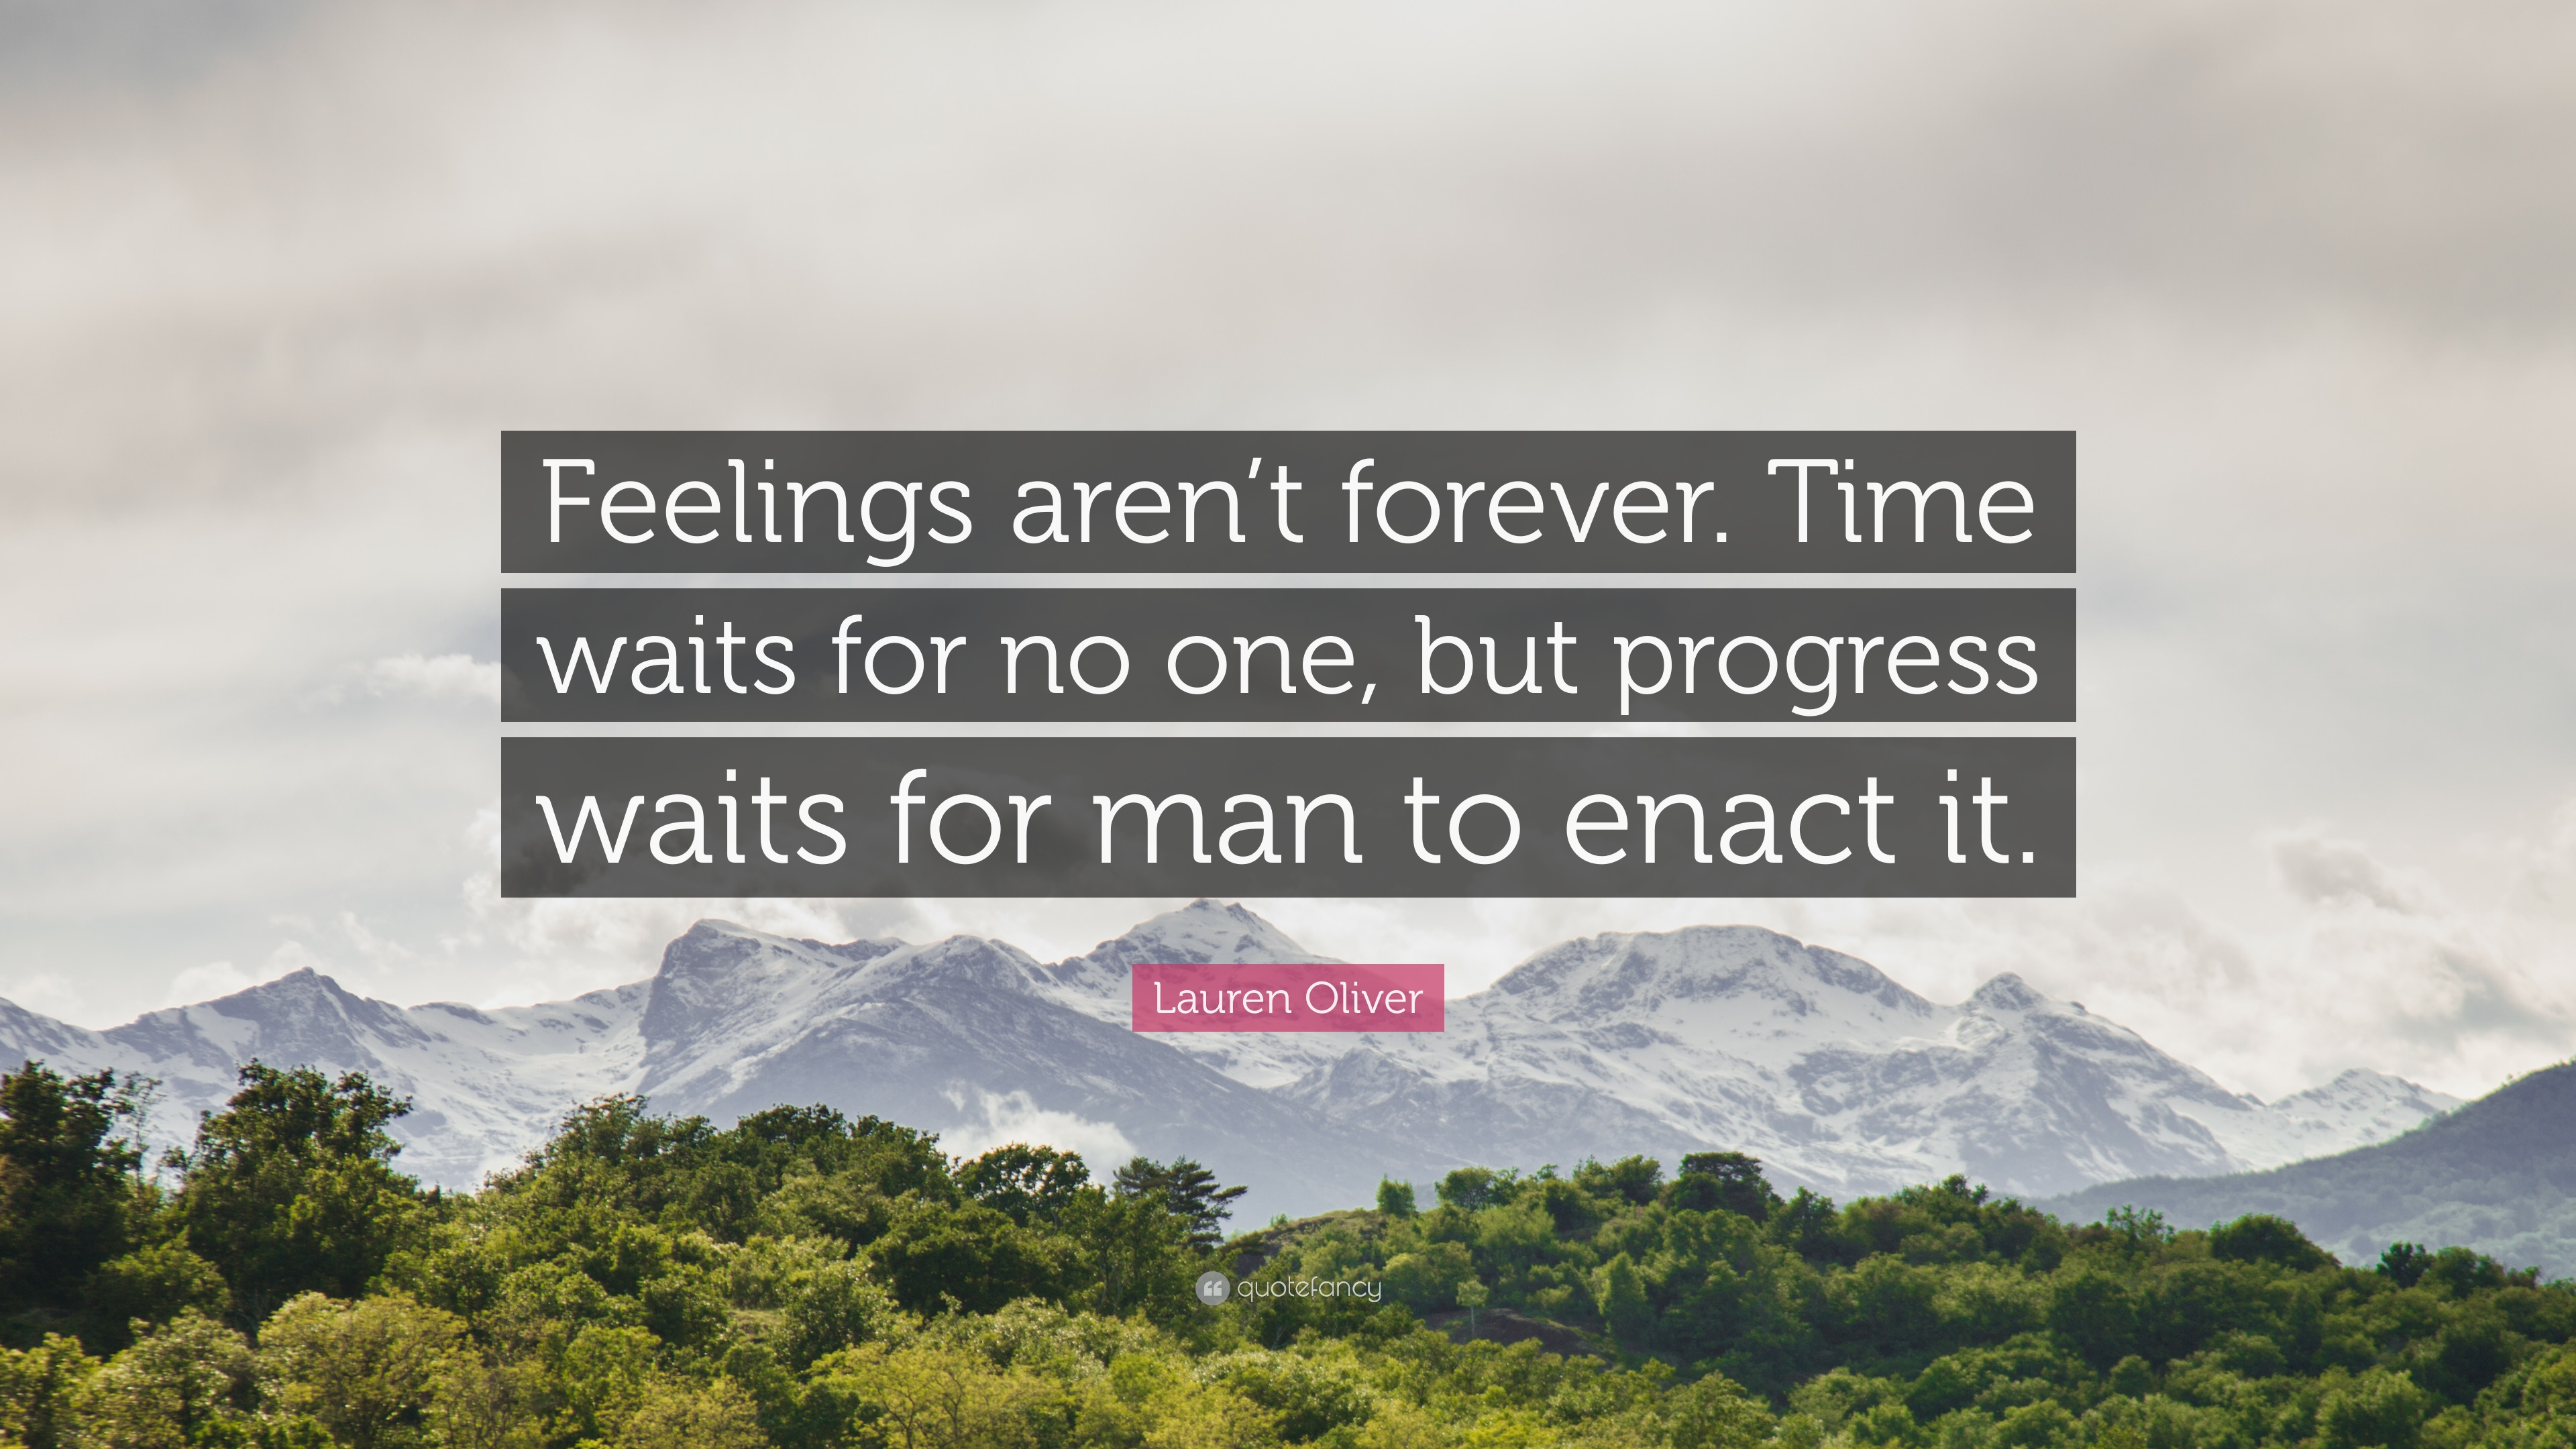 Lauren Oliver Quote Feelings Arent Forever Time Waits For No One